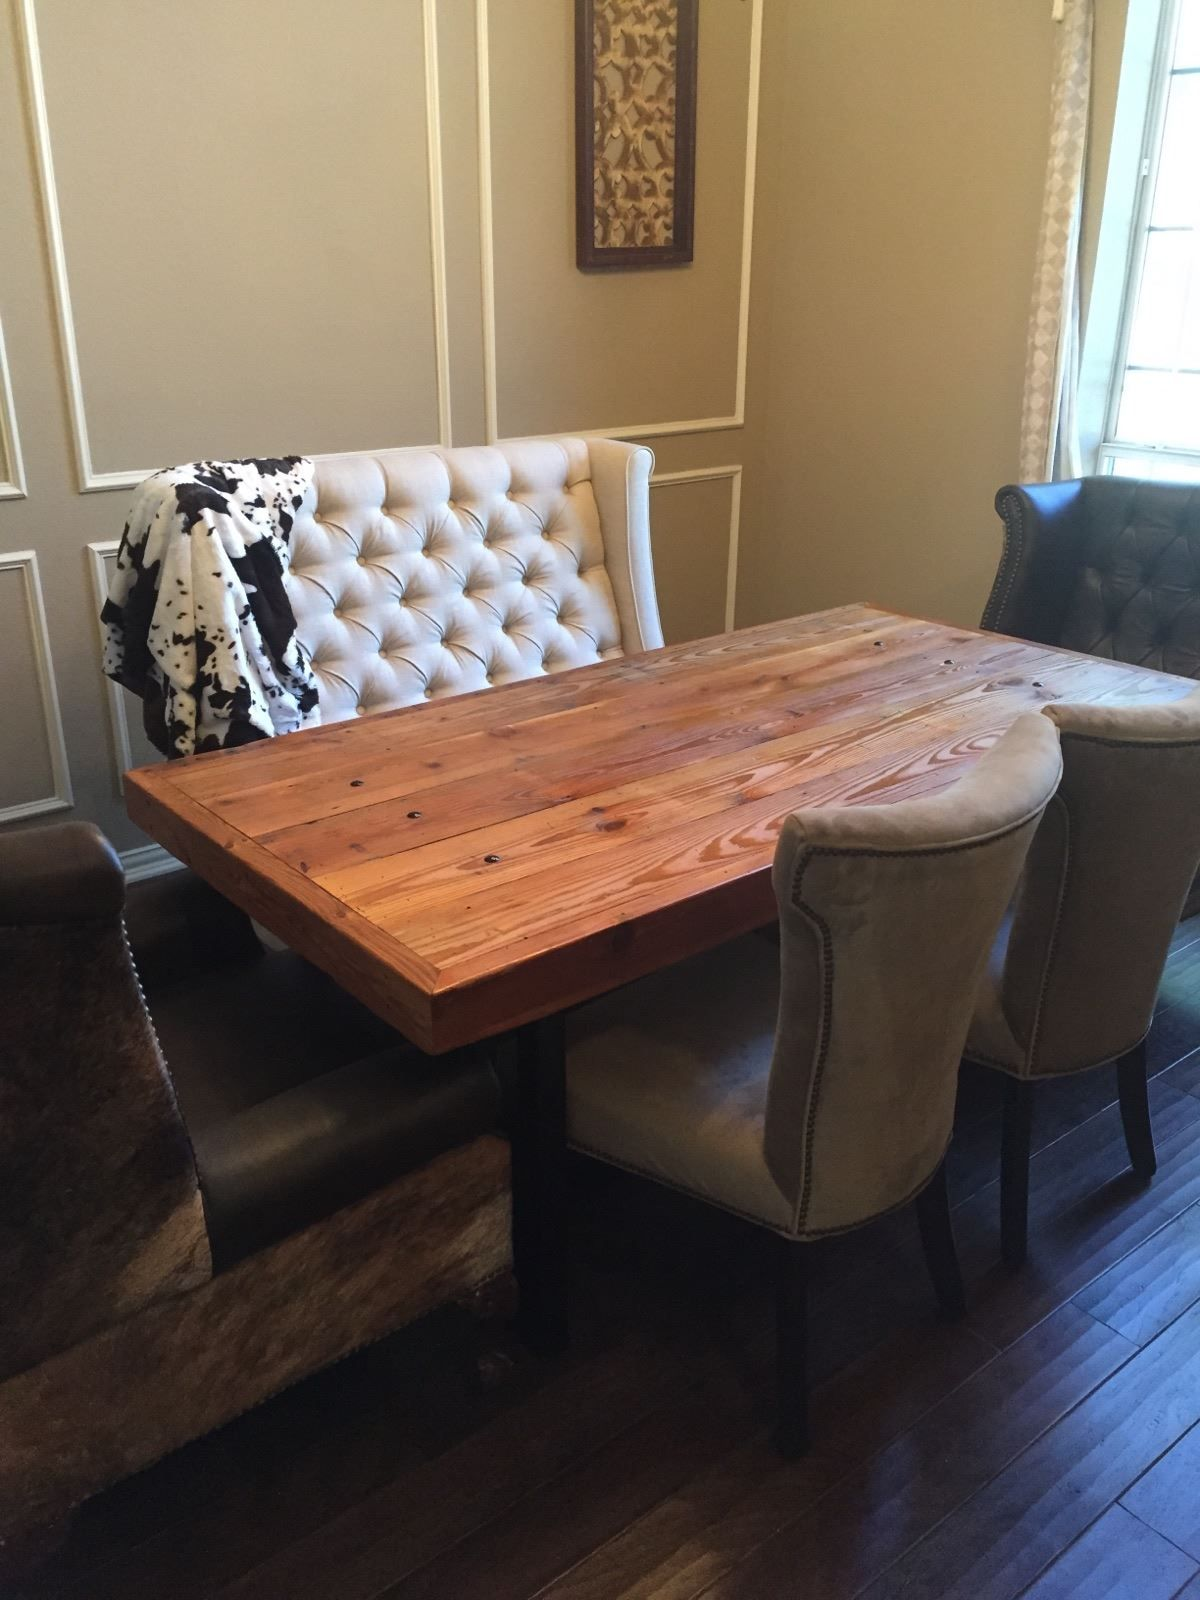 We Love This Table Which Was Built Using Our Reclaimed Wood Antique Lumber Company Reclaimed Wood Dining Table Reclaimed Wood Reclaimed Wood Projects